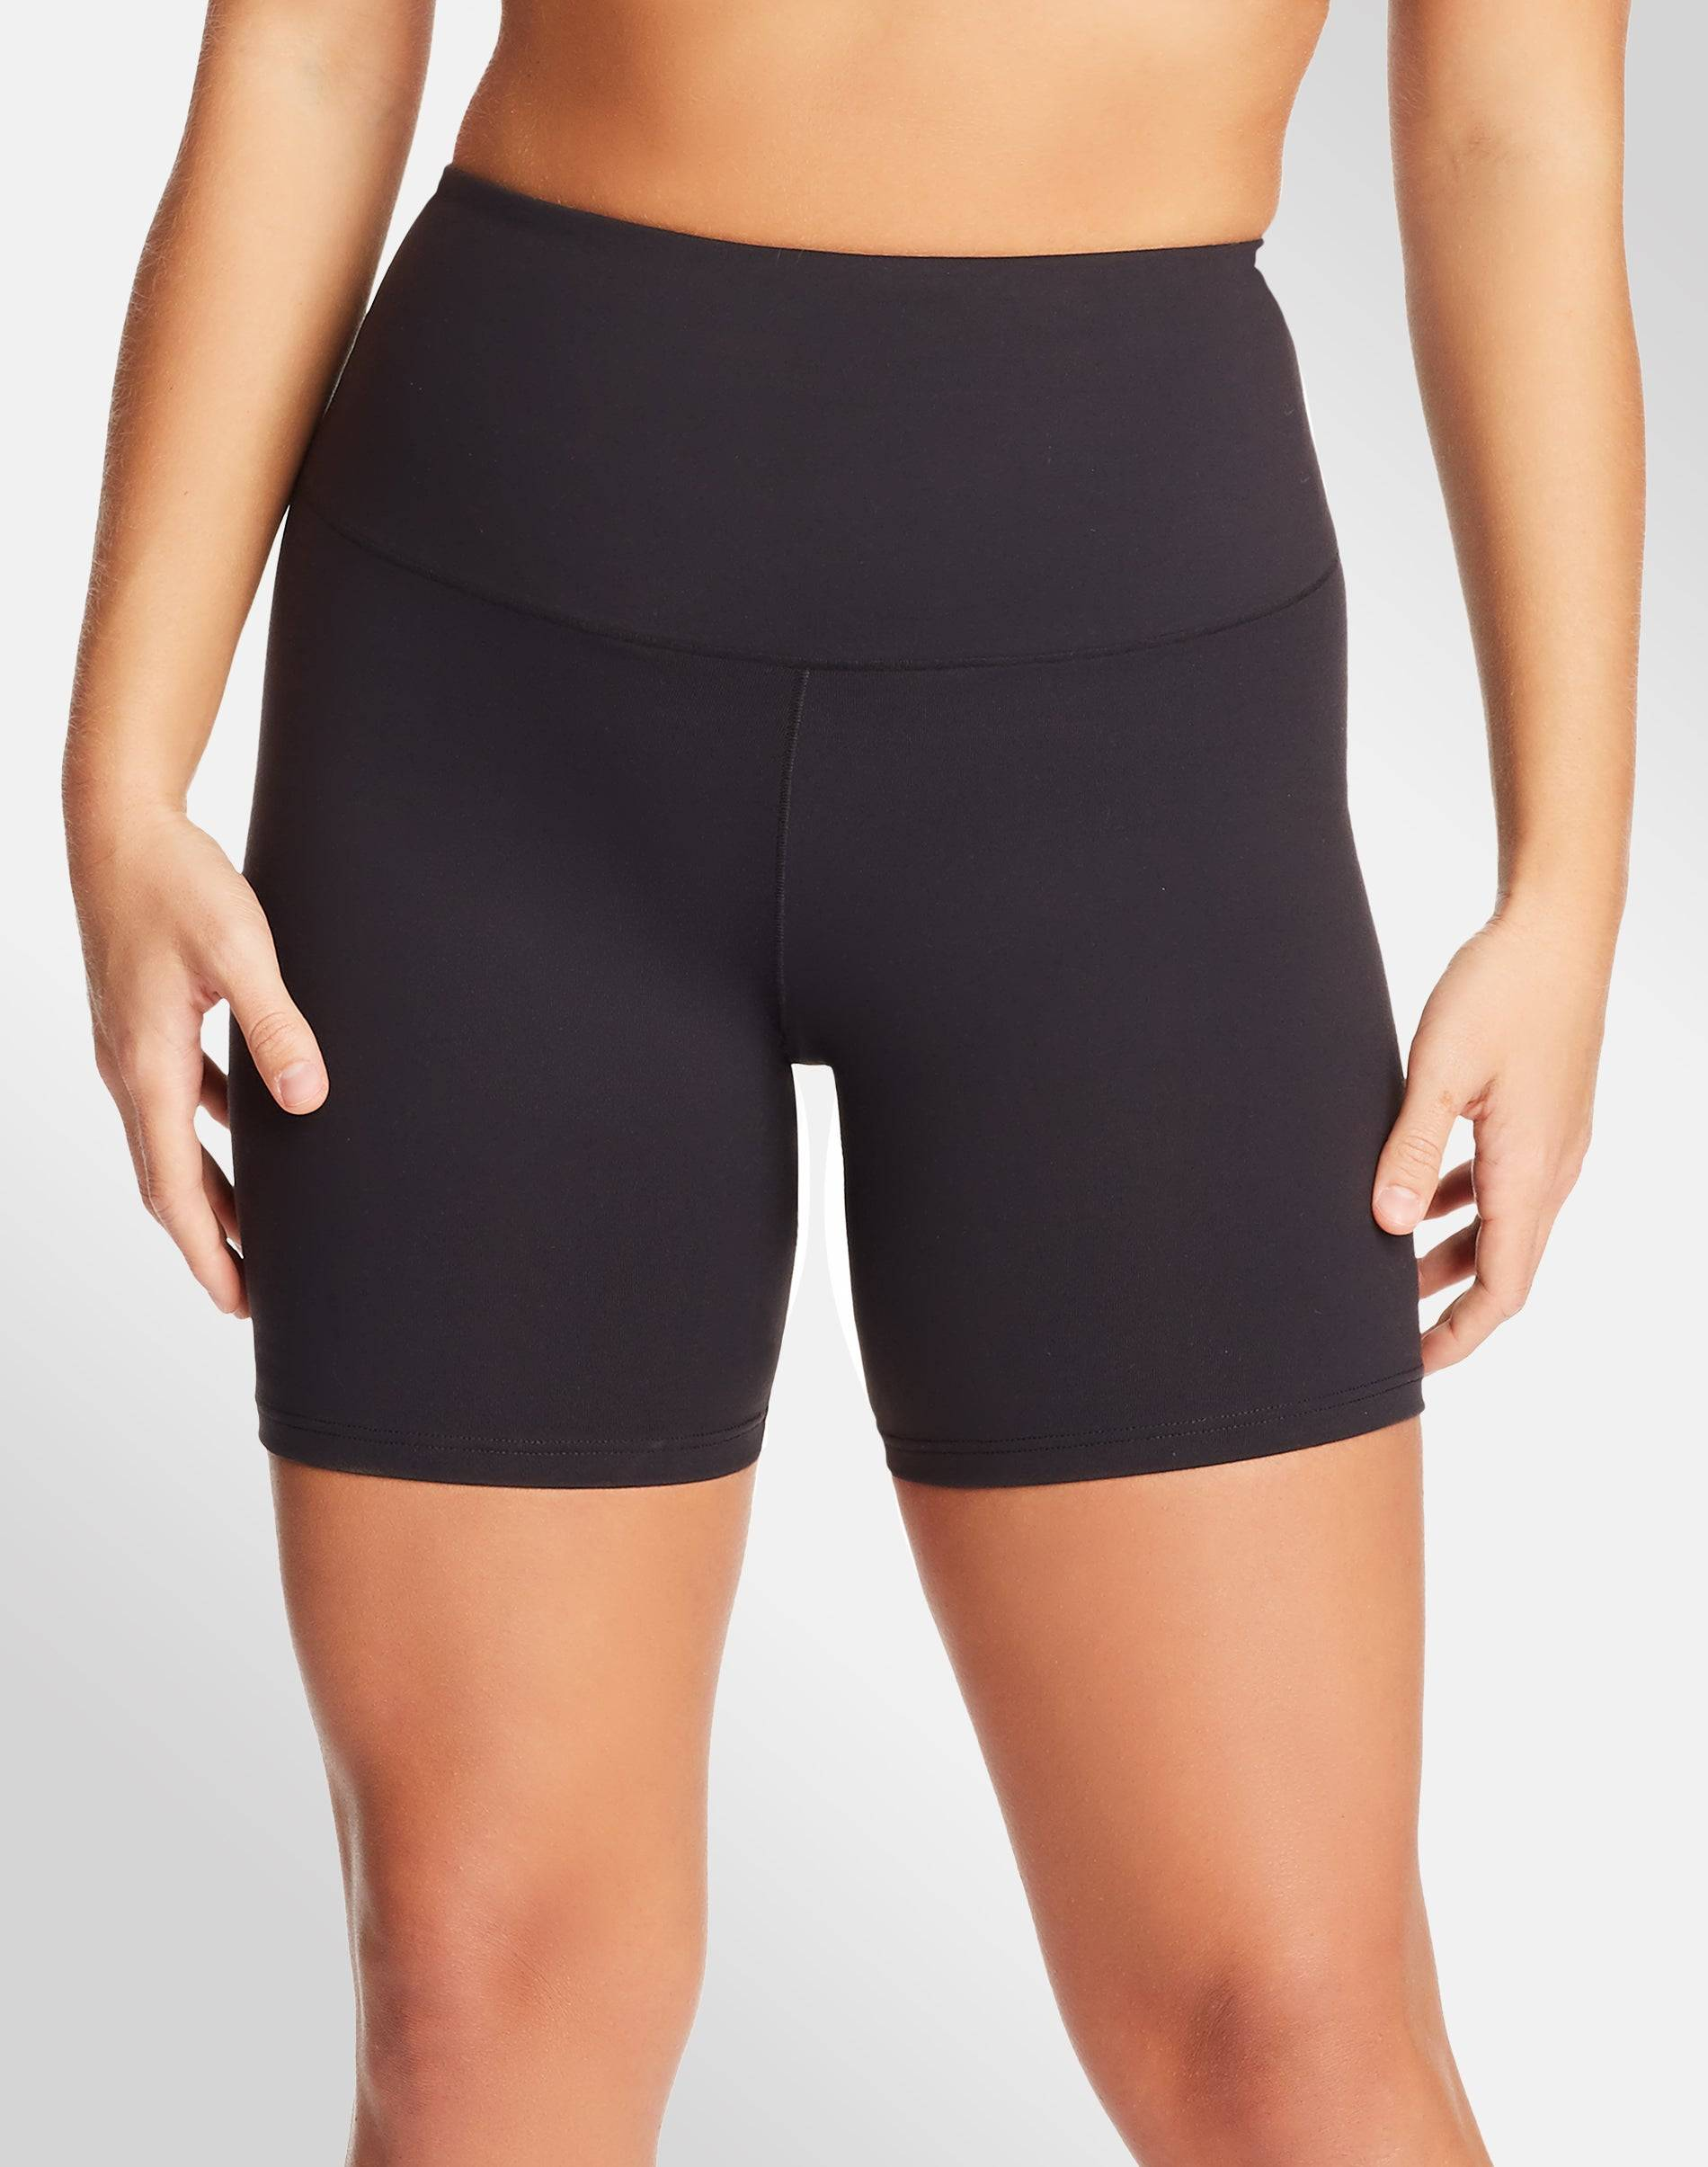 Maidenform Bike Short with Cool Comfort Black S Women's